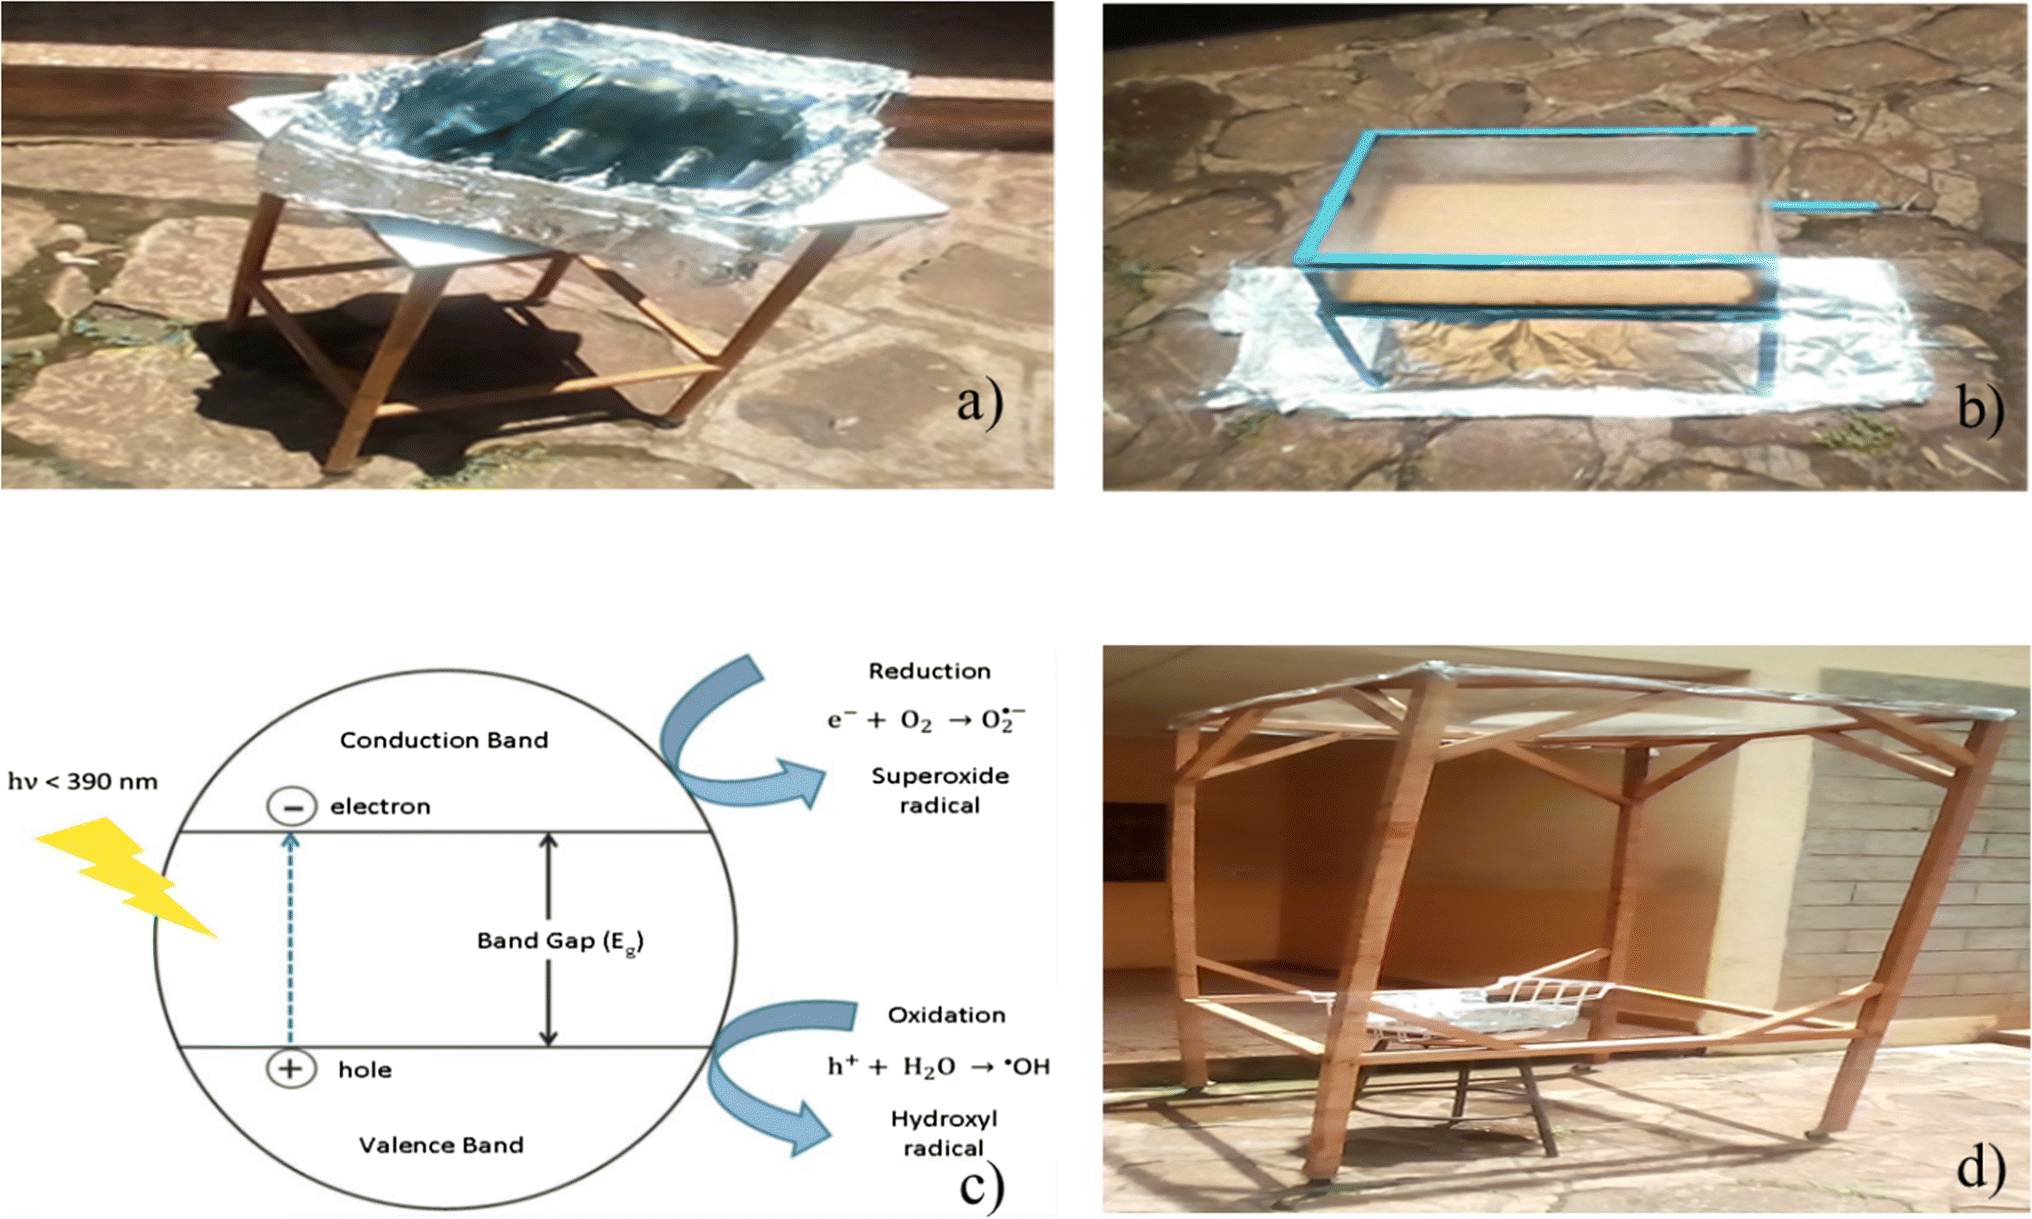 Solar disinfection potentials of aqua lens, photovoltaic and